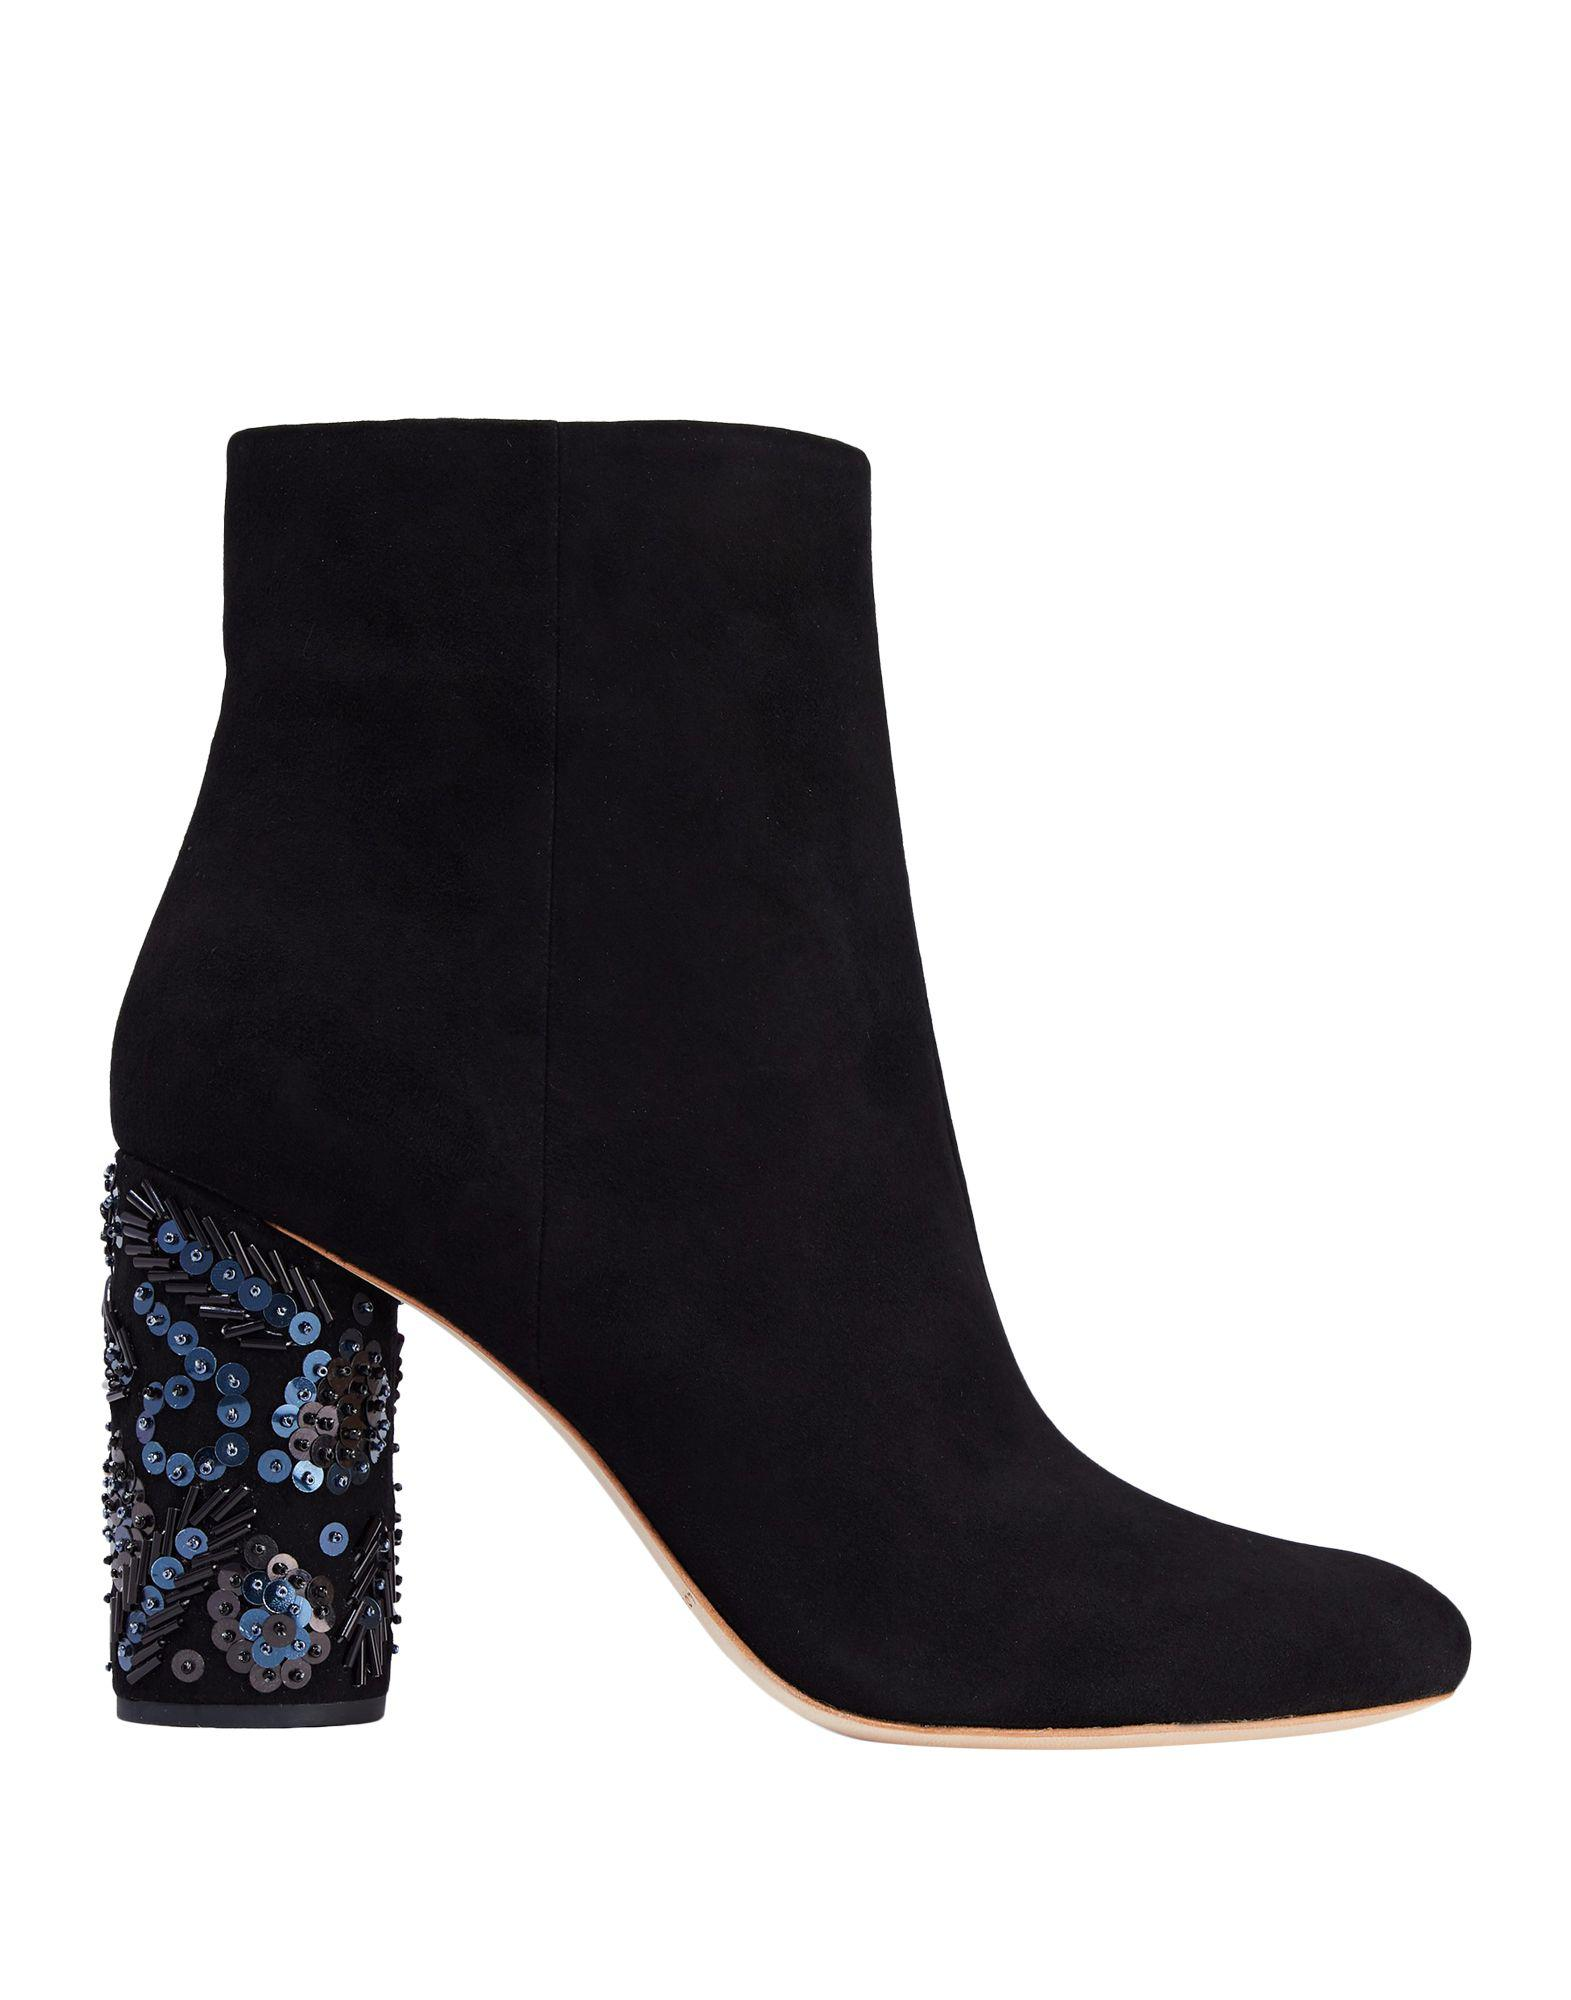 51cdf21bd9a4 Lyst - Loeffler Randall Ankle Boots in Black